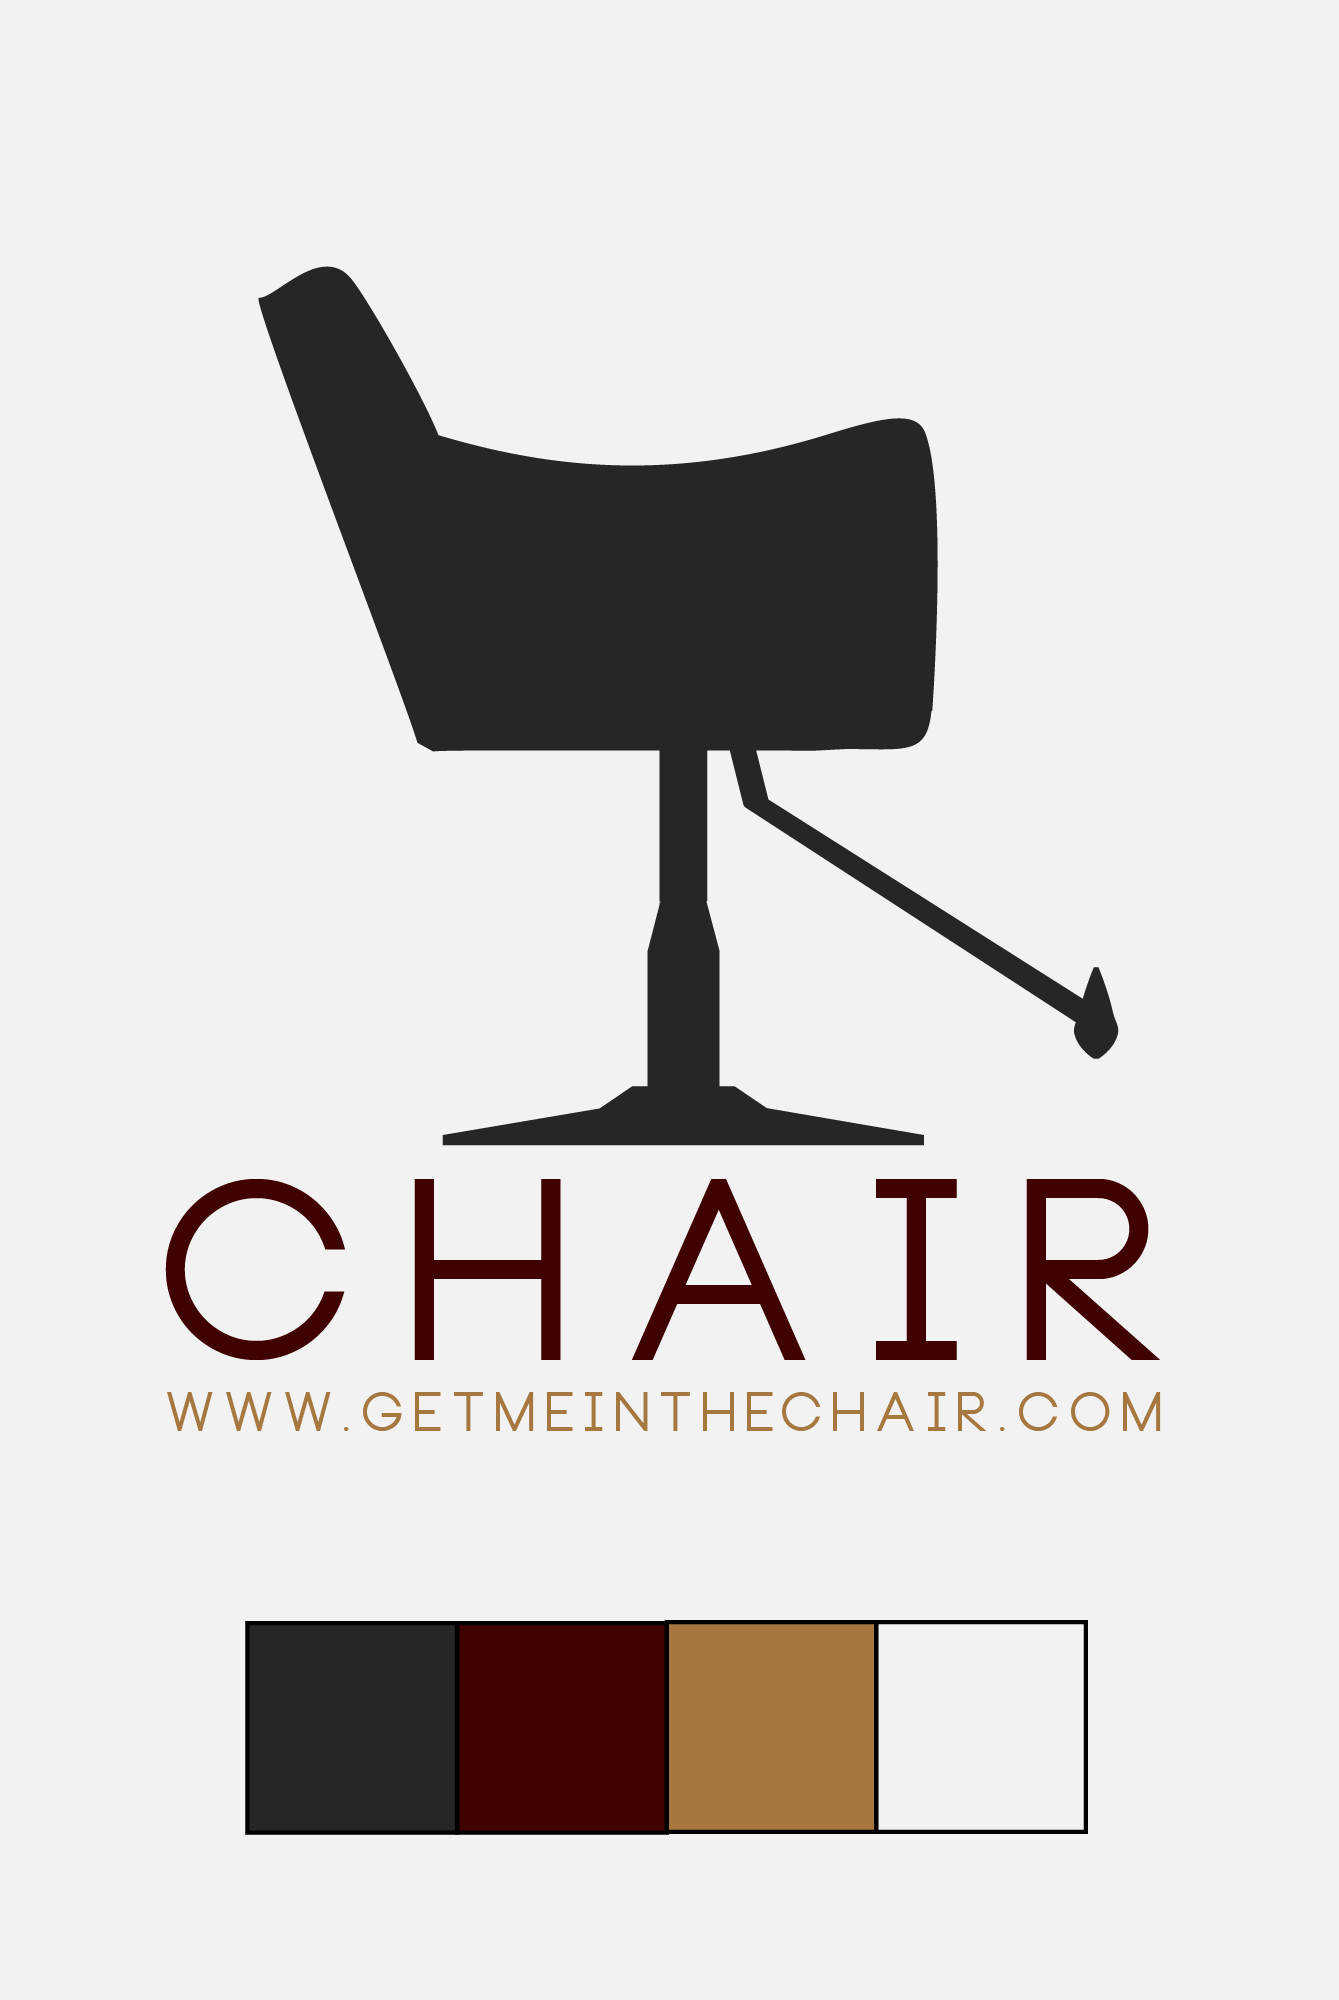 Chair_LOGO_1.png